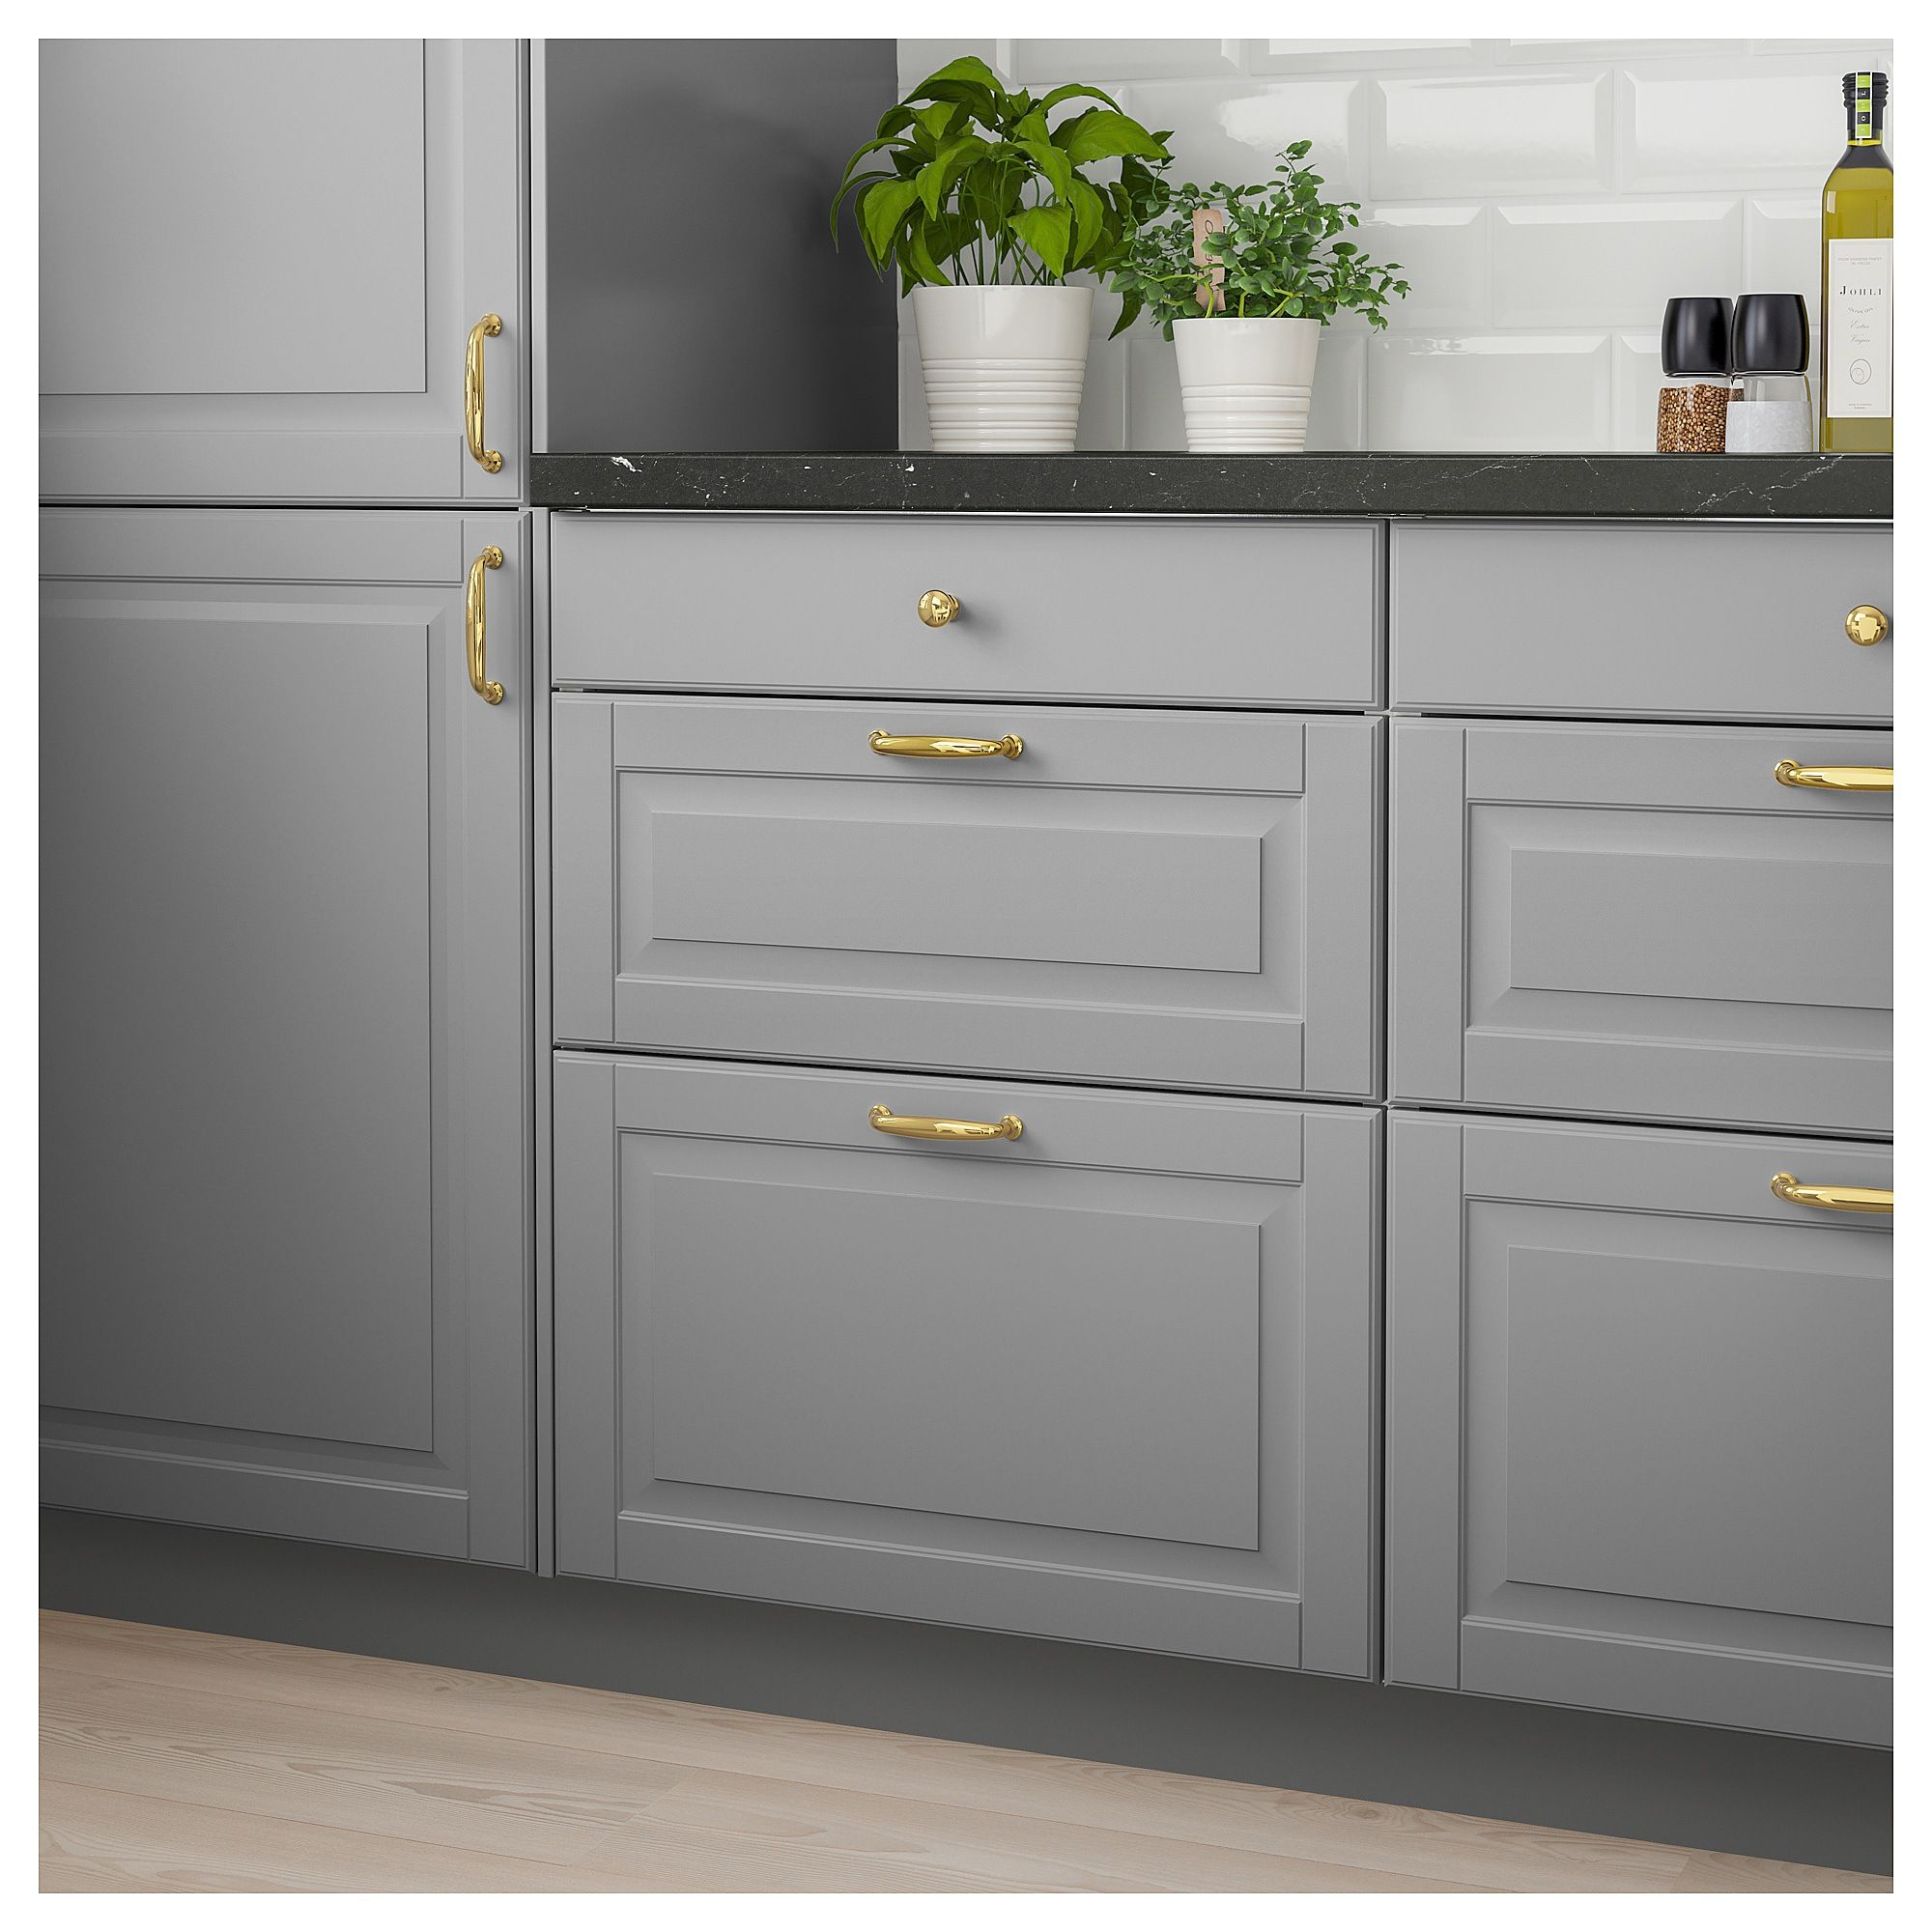 Bodbyn Drawer Front Gray 24x15 61x38 Cm Kitchen Design